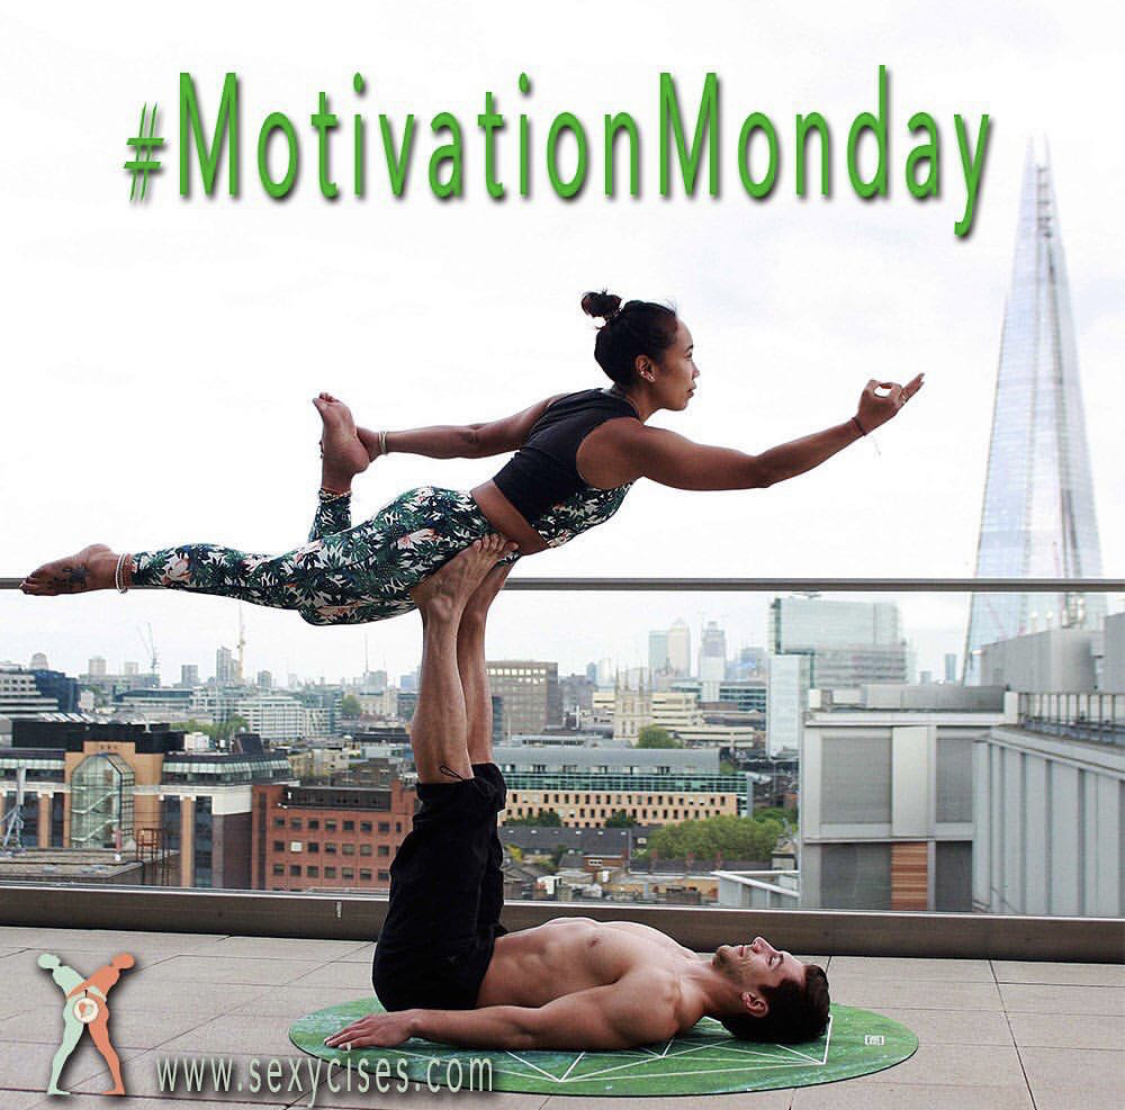 If you don't try new things you'll never grow.. Step up your love life with the ULTIMATE Couples Workout, SEXYCISES! http://Sexycises.com #Sexycises #CouplesYoga #CouplesWorkout #MondayMotivation #HappyMonday #MondayMood #PoseOfTheDay pic.twitter.com/AdakfkVsp9